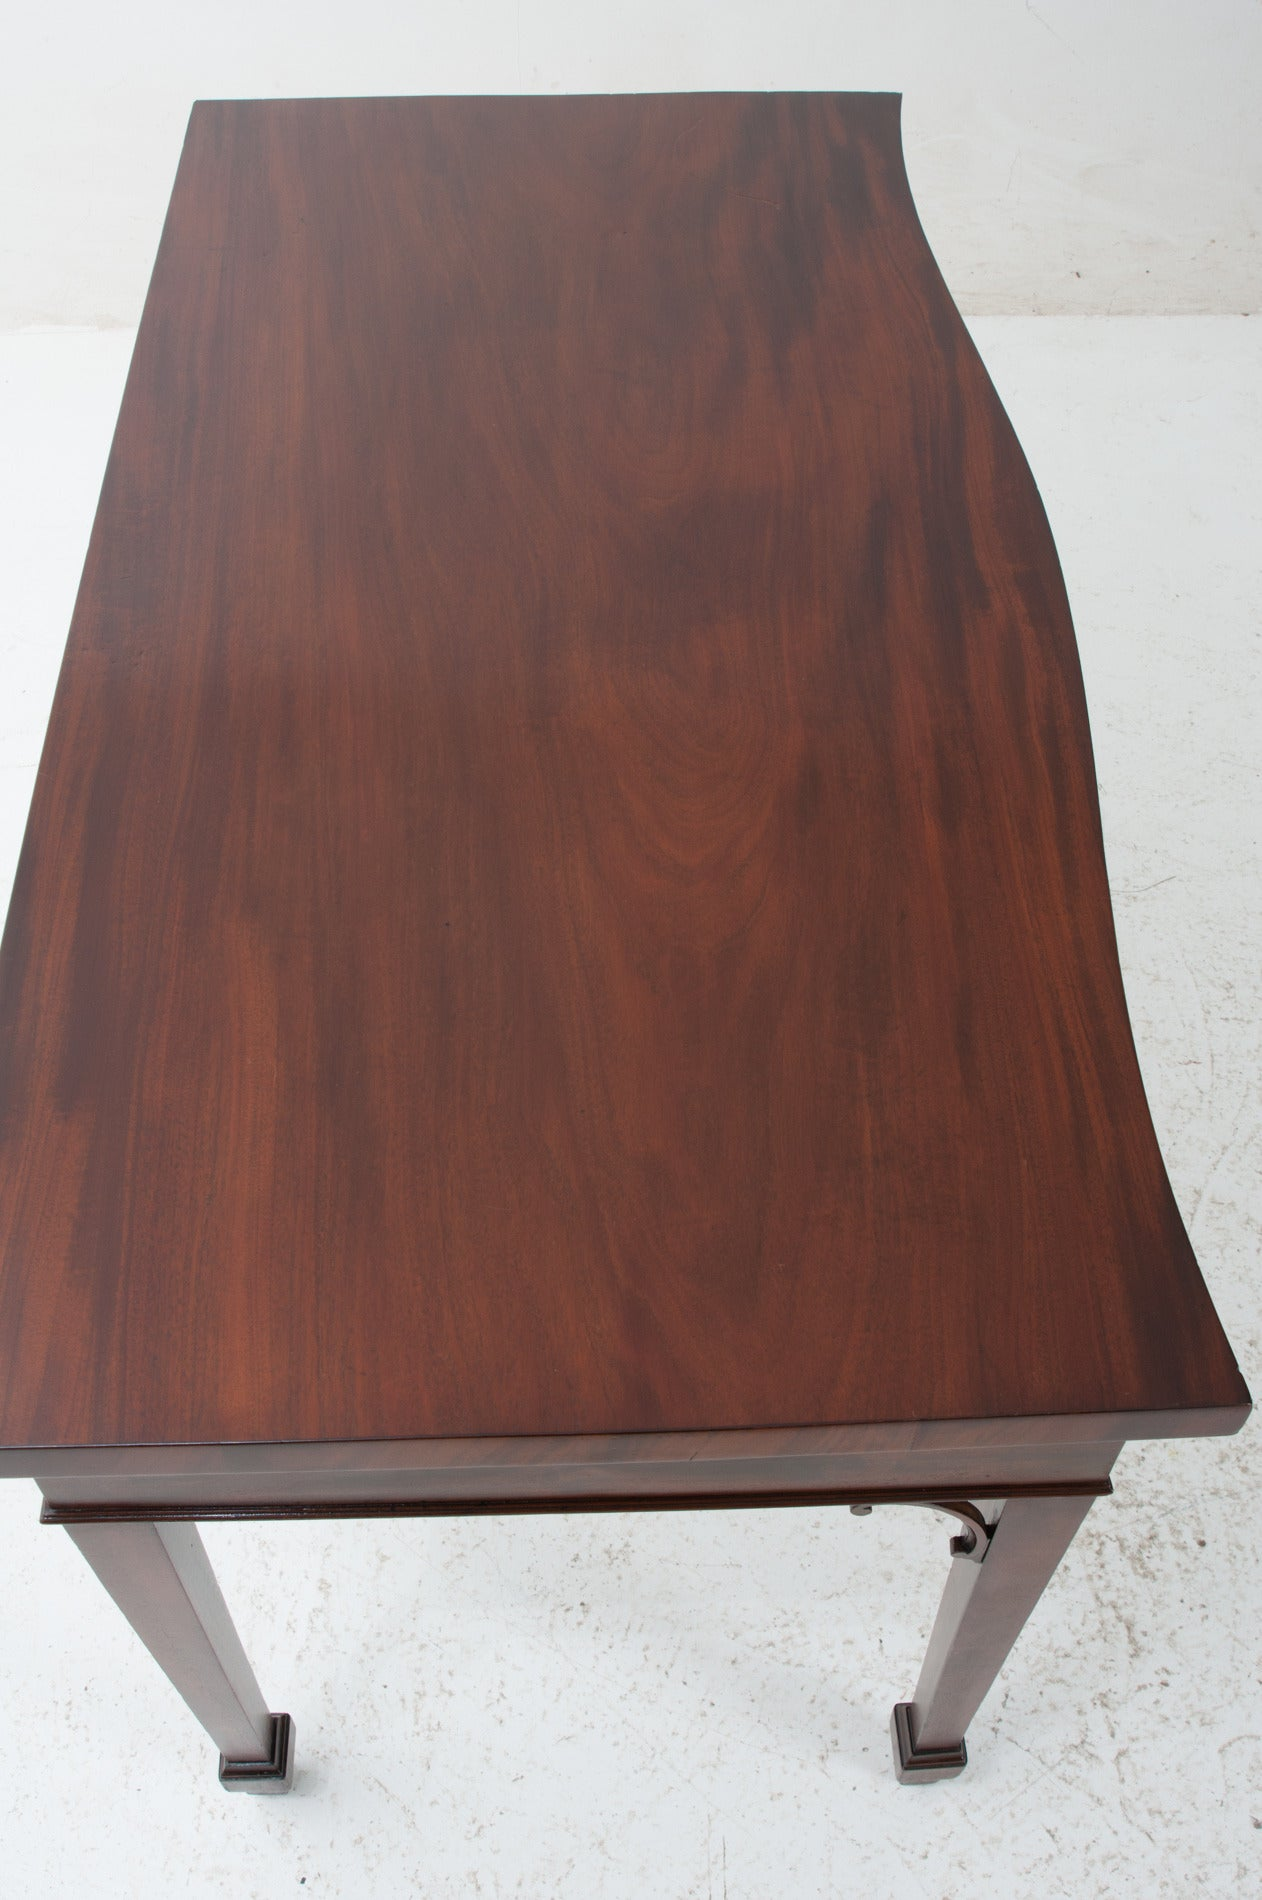 English 1860s serpentine front server or console in beautiful rich mahogany. It retains its beautiful, original color and patina and has a fresh polish. See the detailed pictures for a scratch on the surface. It doesn't steer us away, we just